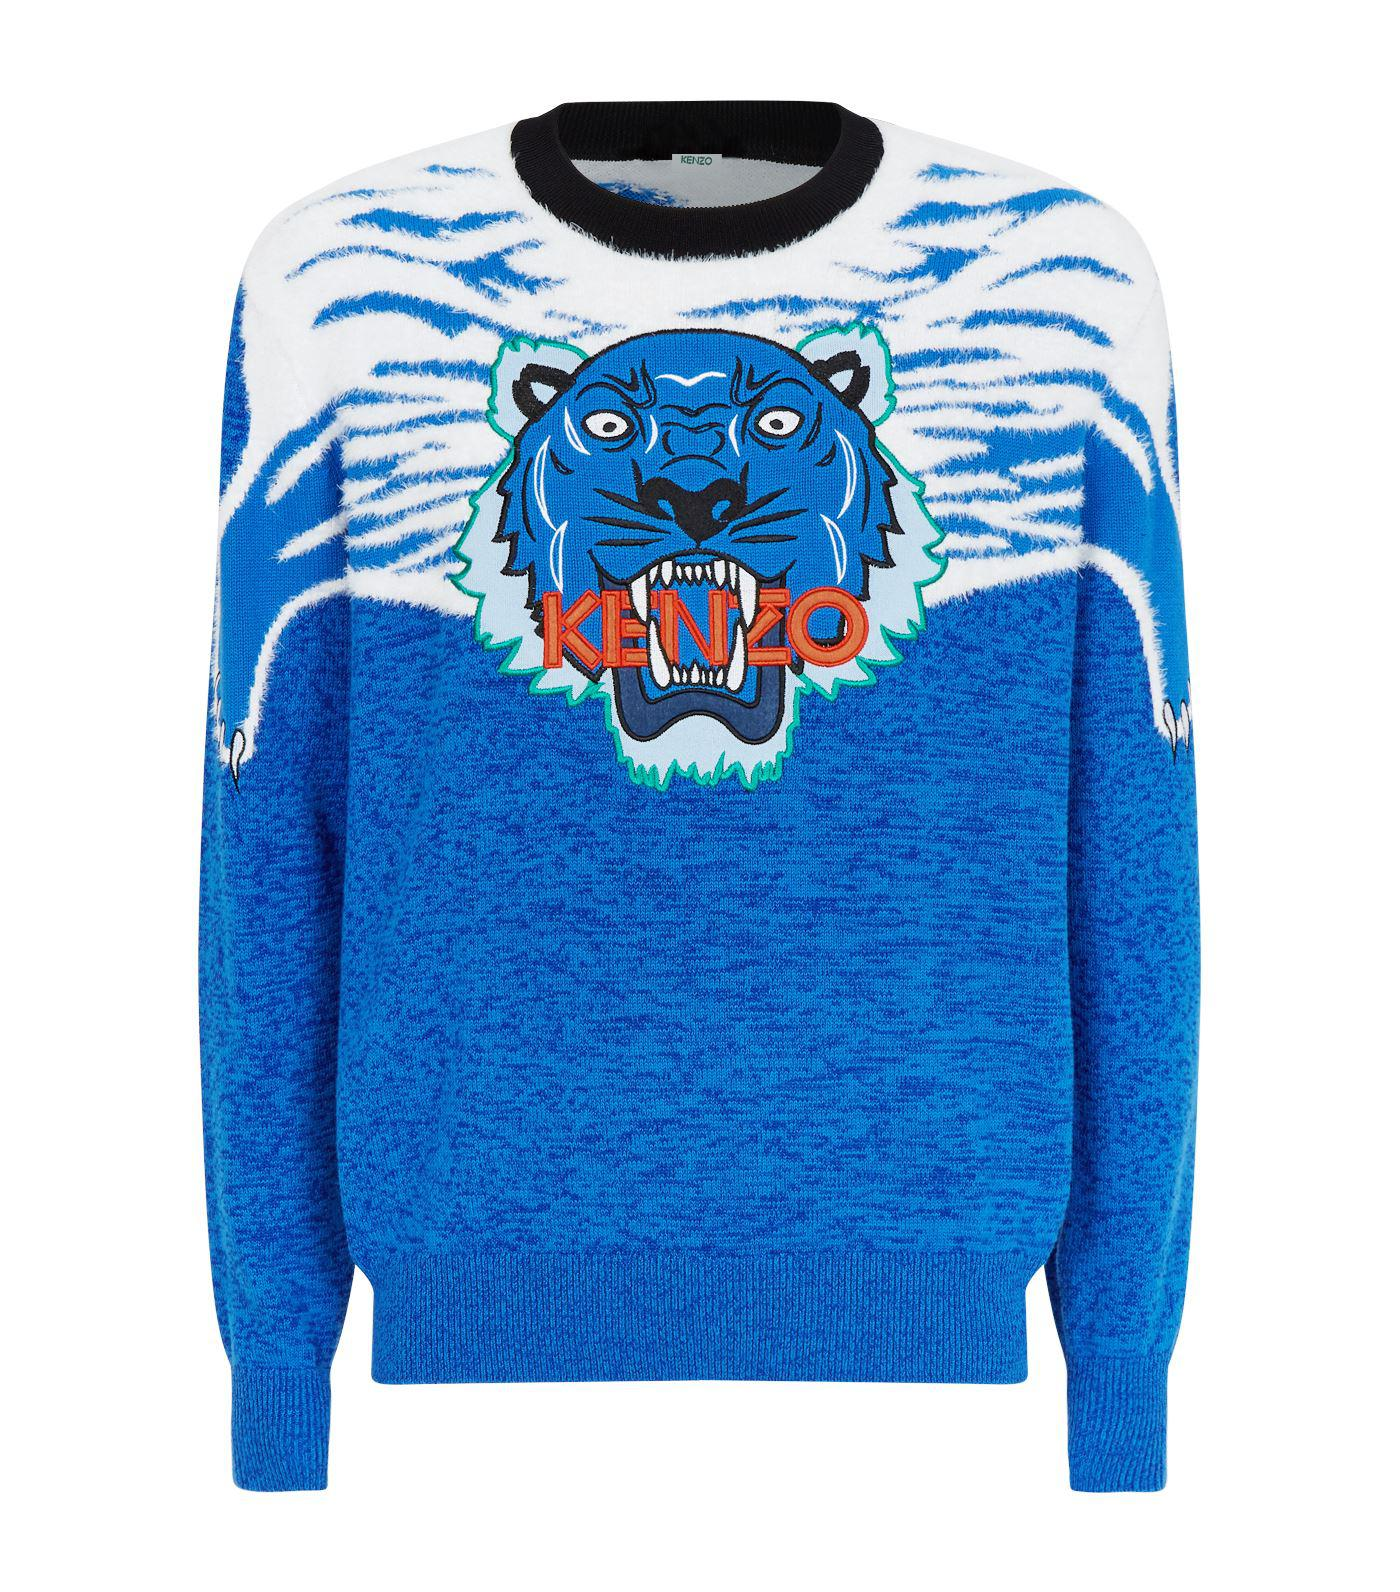 1396b29cf5 Lyst - Kenzo Tiger Applique Sweater in Blue for Men - Save ...